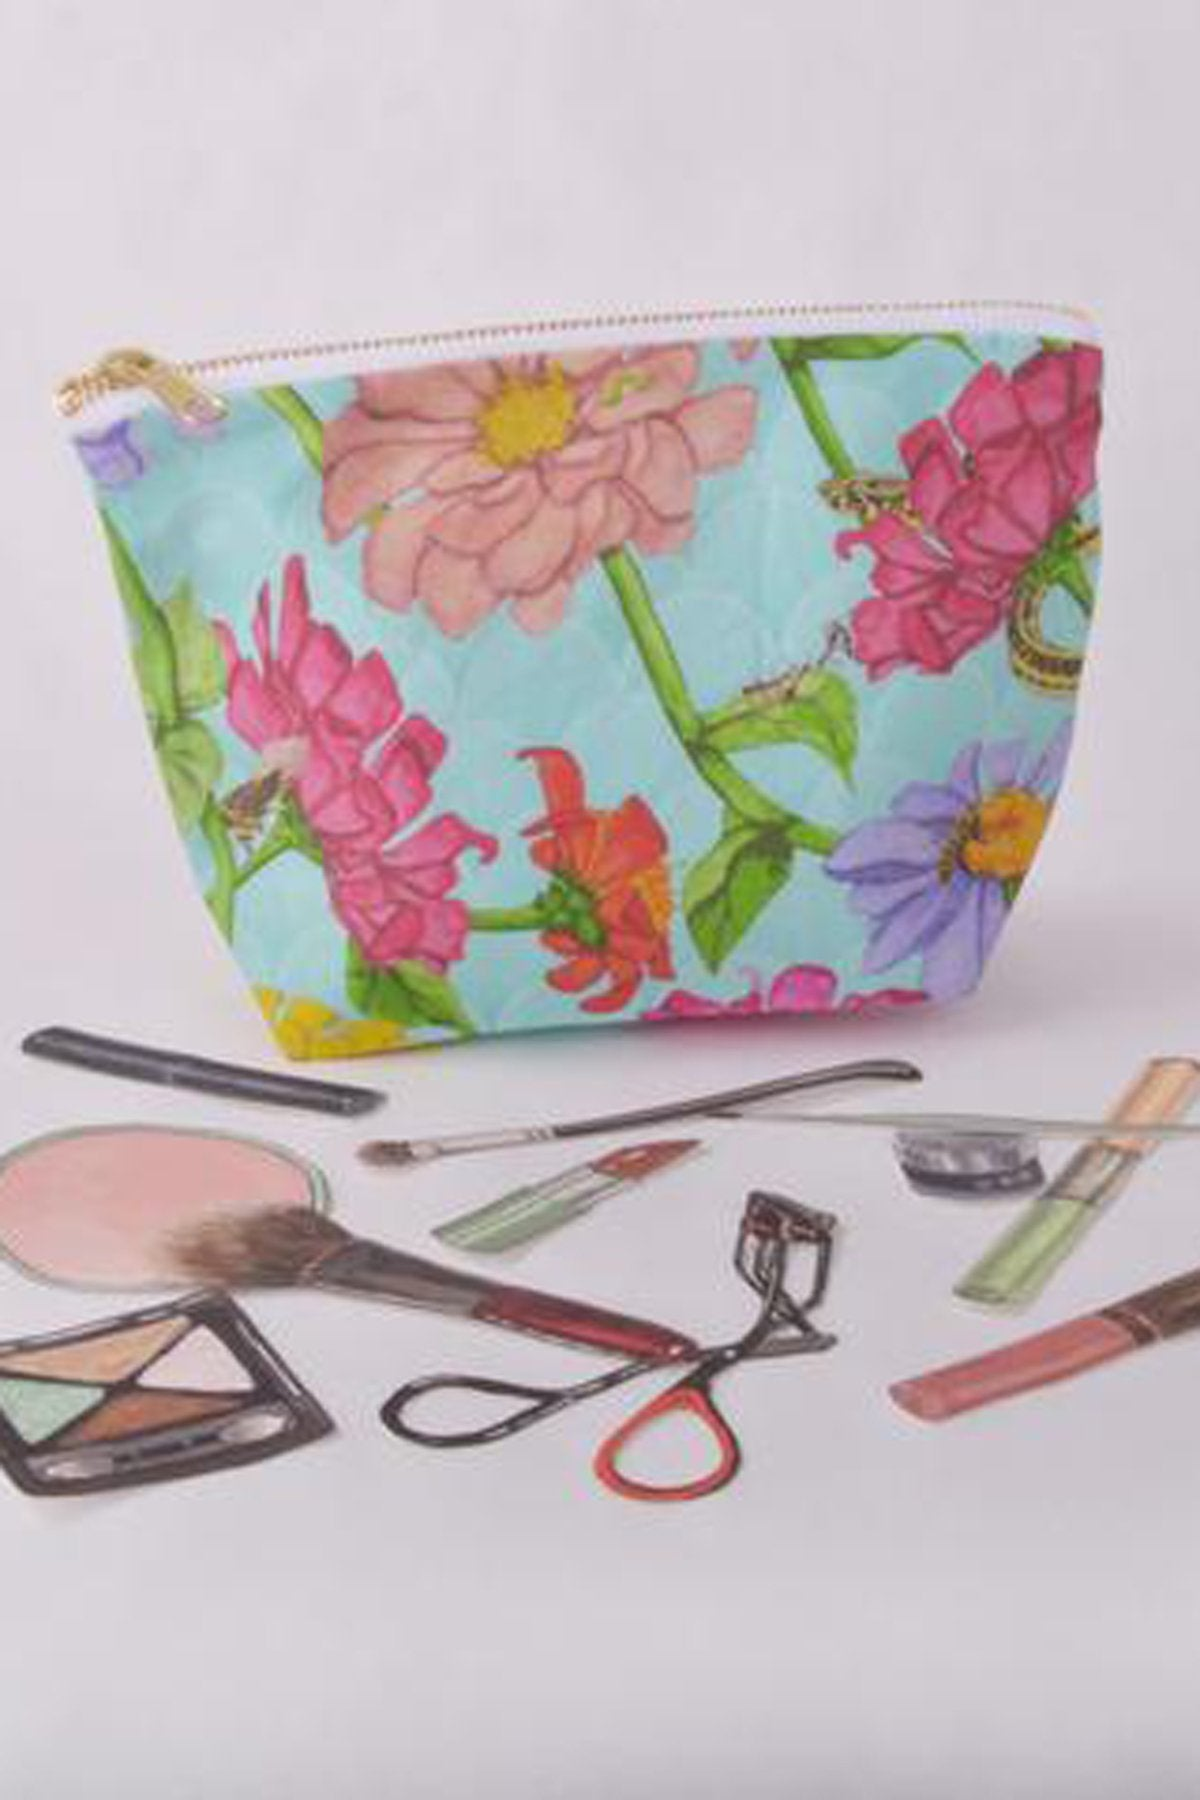 Zinnia and Insects Make Up Bag by Gold and Ginger, digital print, original watercolour pen and ink drawing, made in Ontario